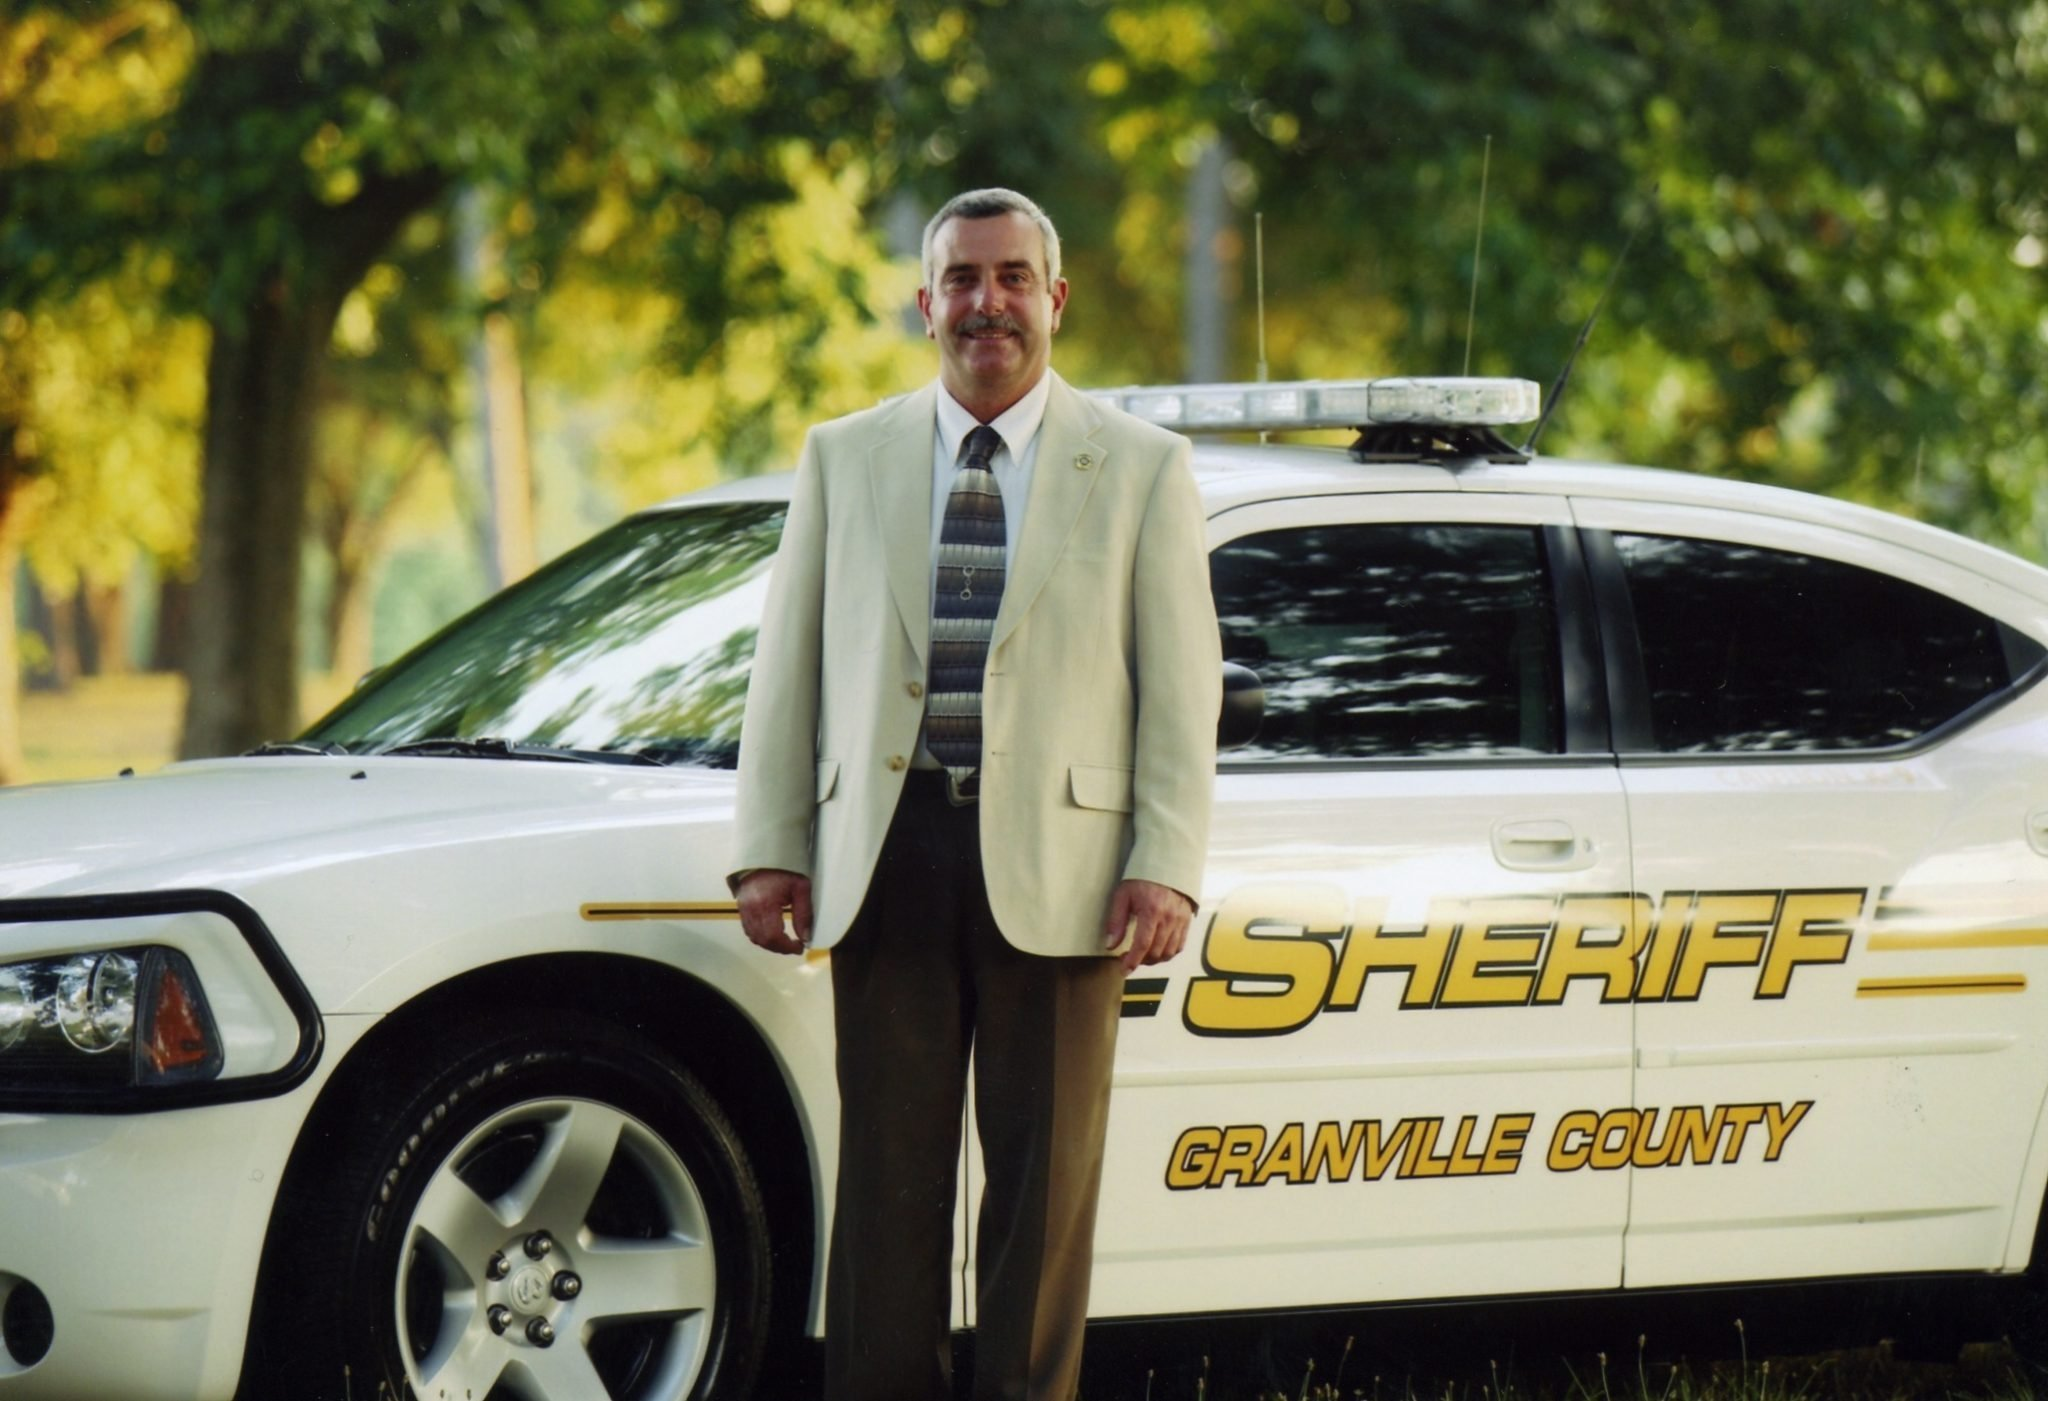 Granville County Attorney James Wrenn filed a petition Monday for Sheriff Brindell Wilkins to be suspended, and the sheriff and his counsel agreed to it, Wrenn's office said in a statement. (Credit: CNN)